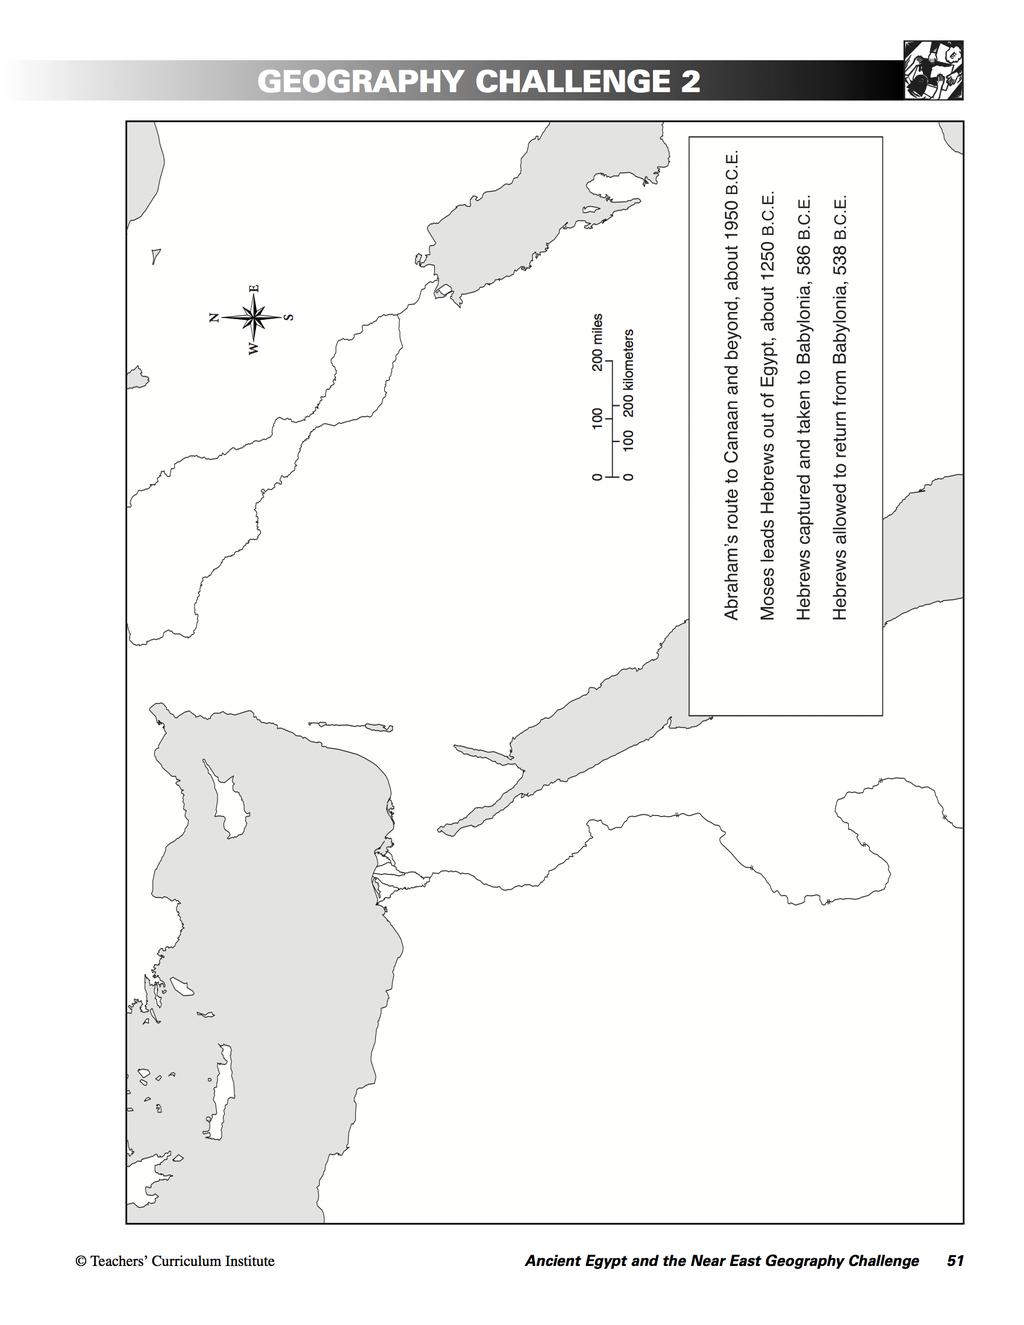 Sixth grade ancient history chapters ancient egypt pdf near the ancient kingdom of israel canaan draw this boundary on your map and lightly shade the inside of it blue then label this area on your map fandeluxe Choice Image